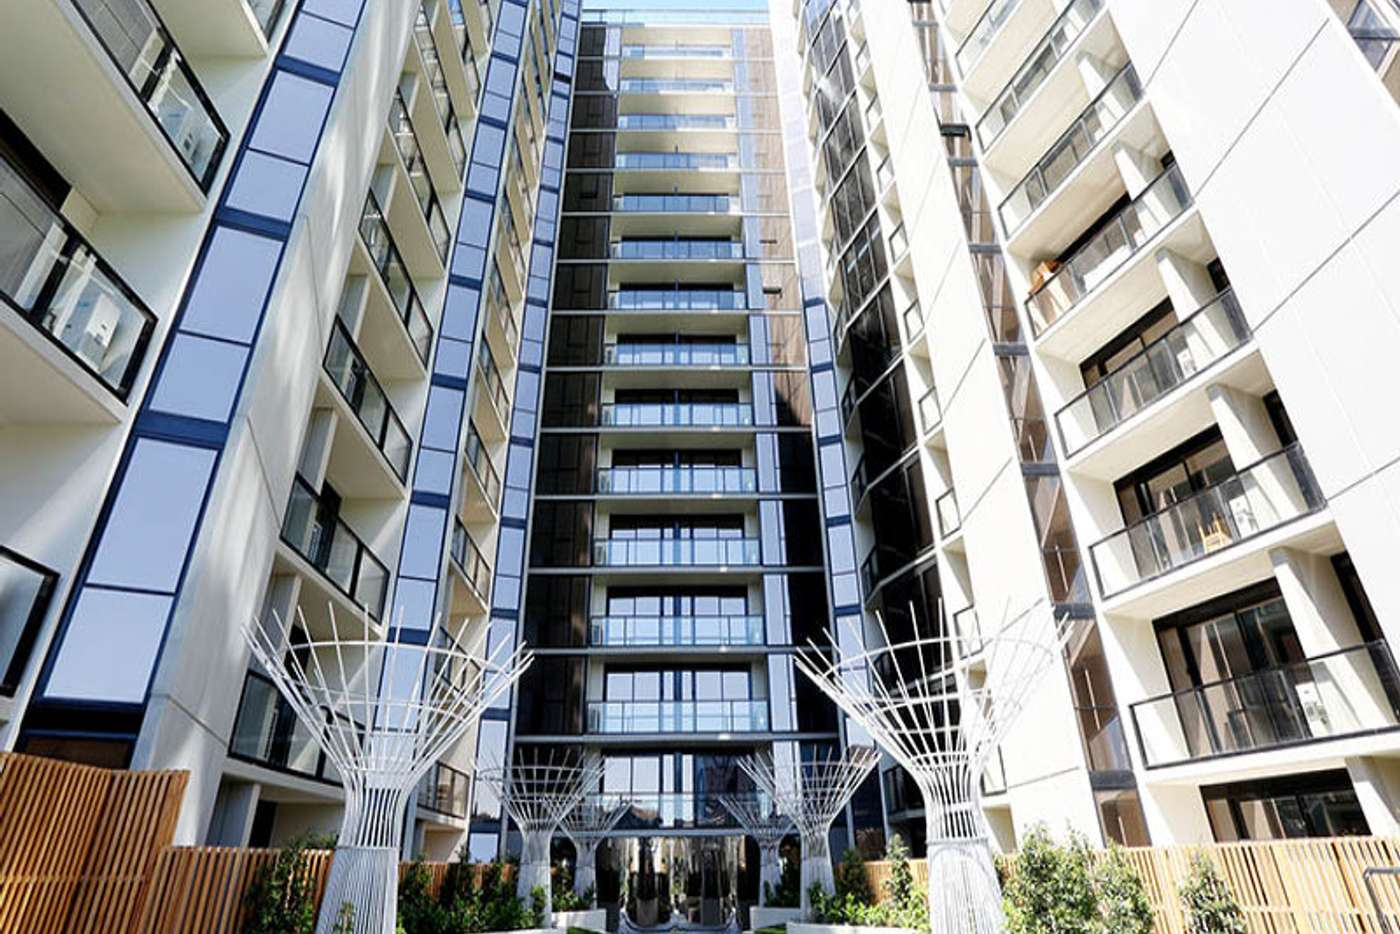 Main view of Homely apartment listing, 302/8 Daly Street, South Yarra VIC 3141